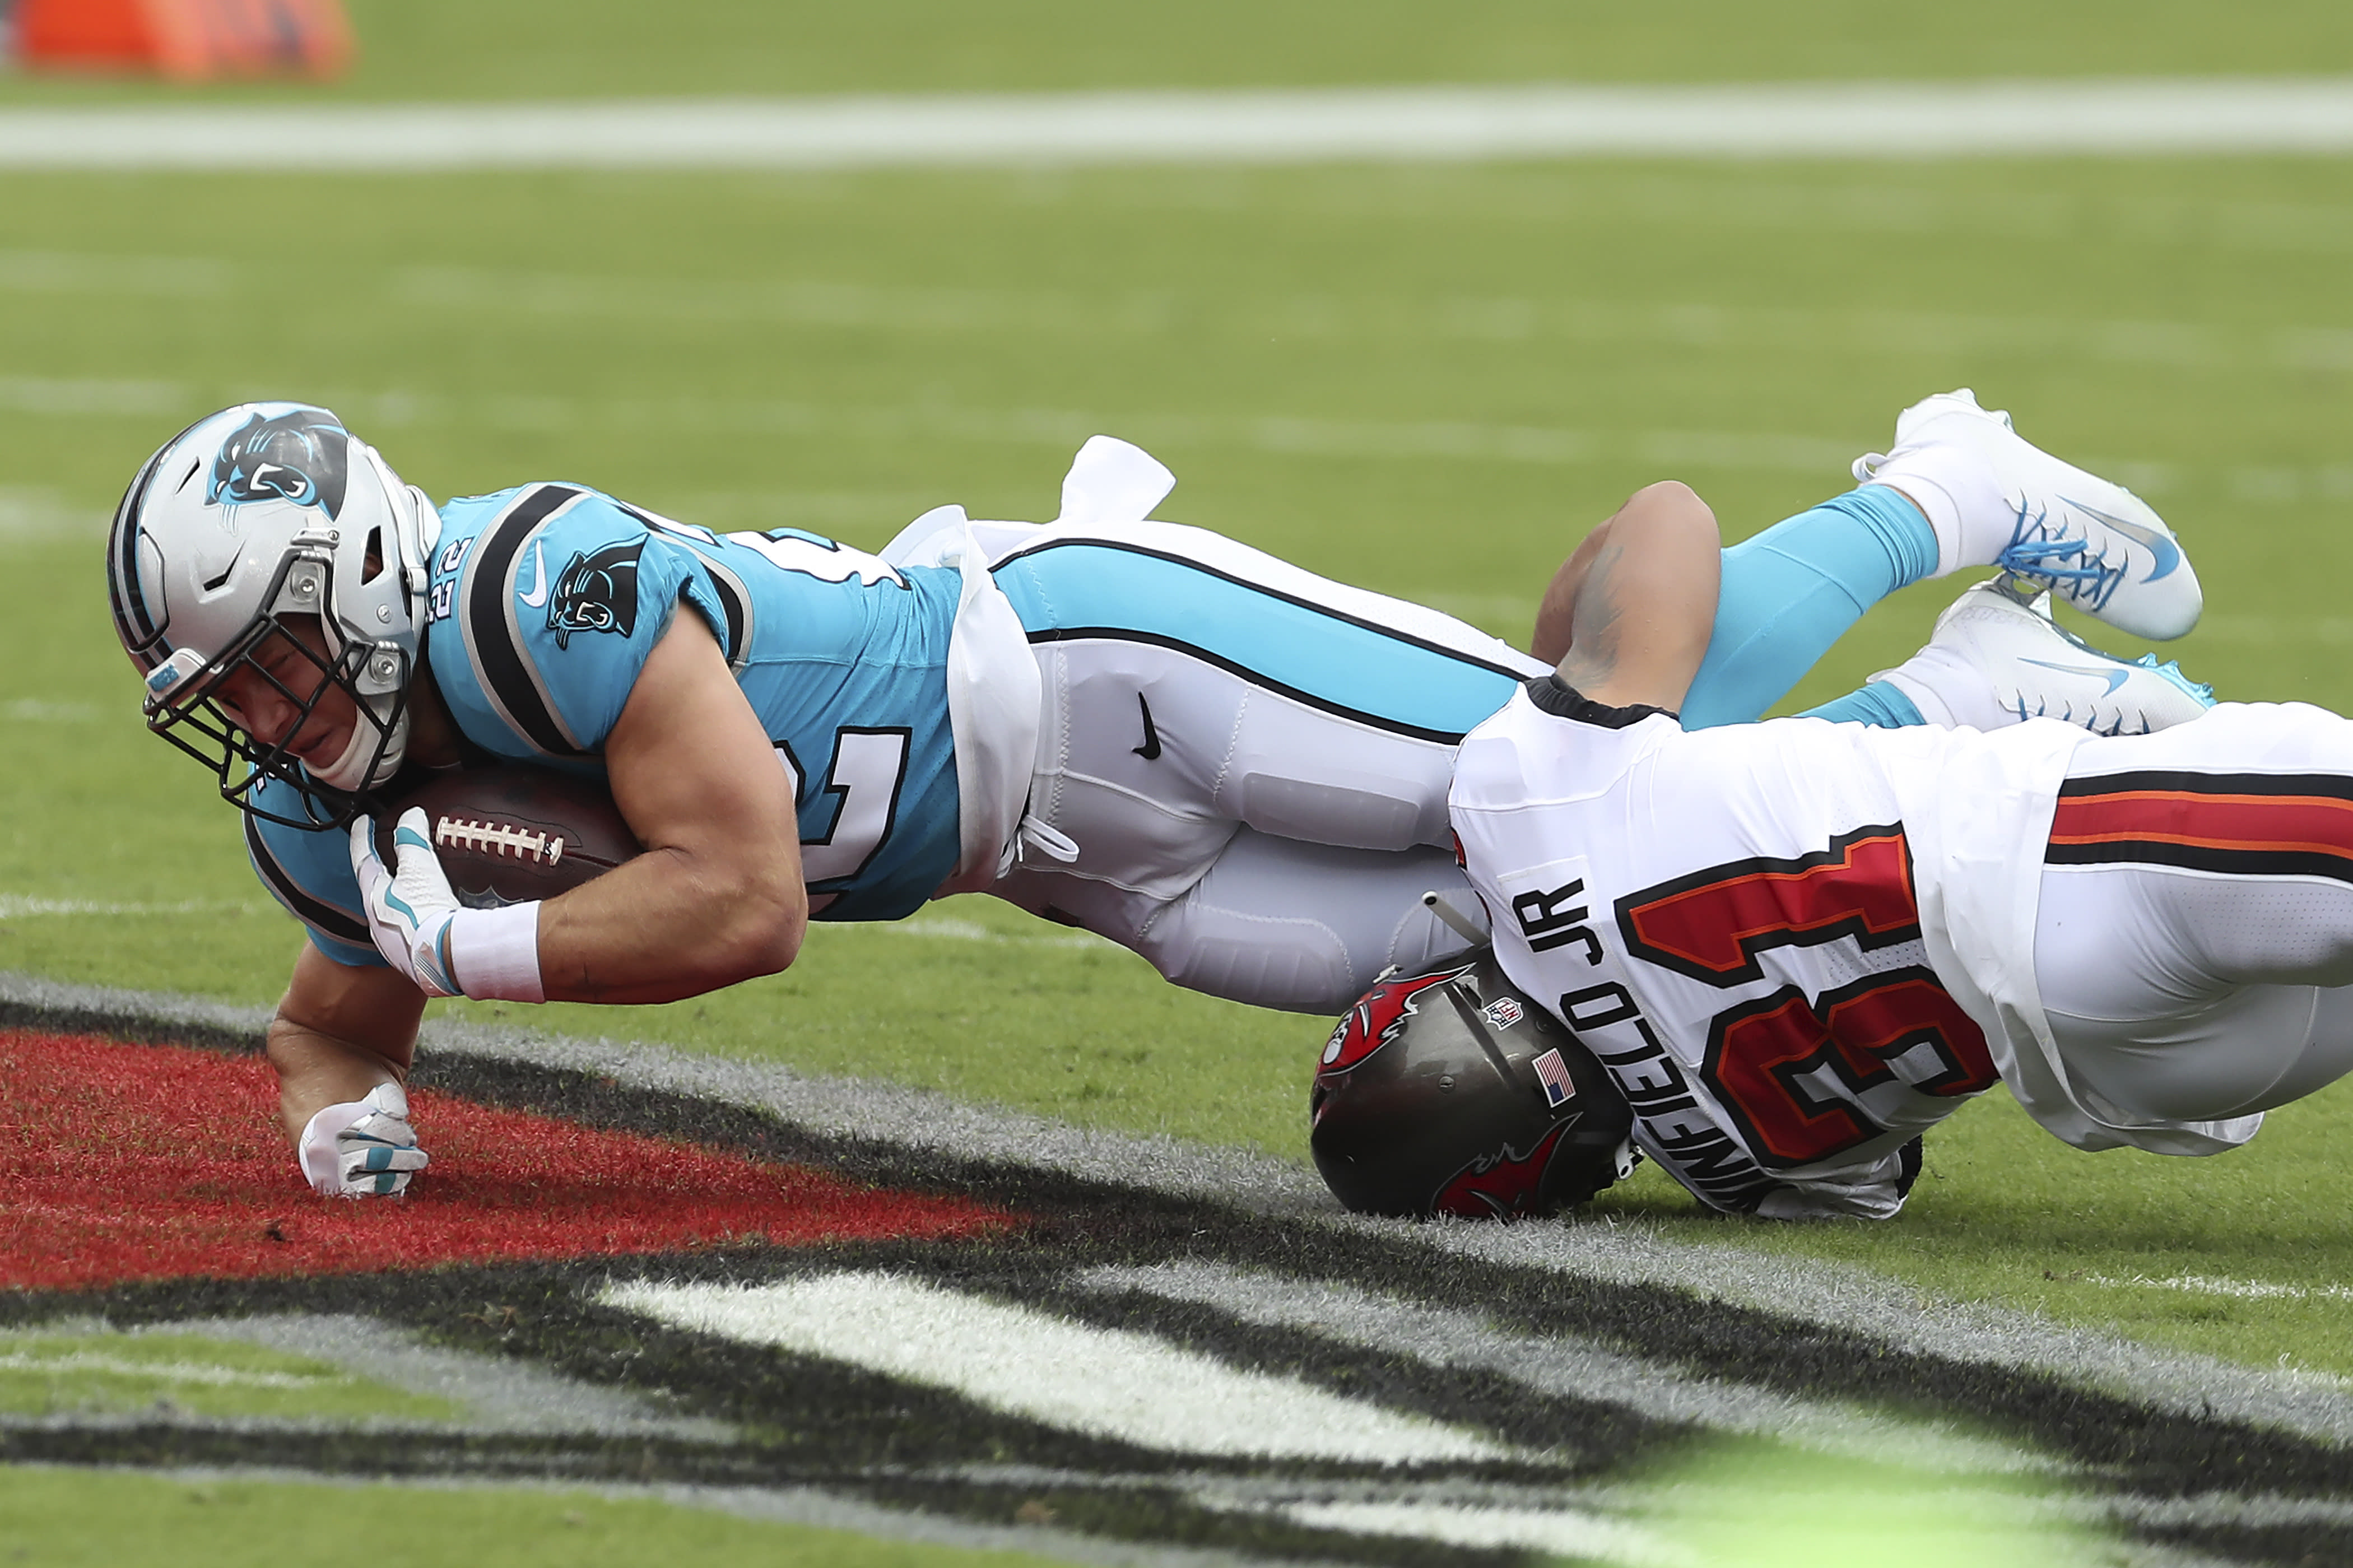 Carolina Panthers running back Christian McCaffrey (22) gets taken down by Tampa Bay Buccaneers safety Antoine Winfield Jr. (31) during the first half of an NFL football game Sunday, Sept. 20, 2020, in Tampa, Fla. (AP Photo/Mark LoMoglio)